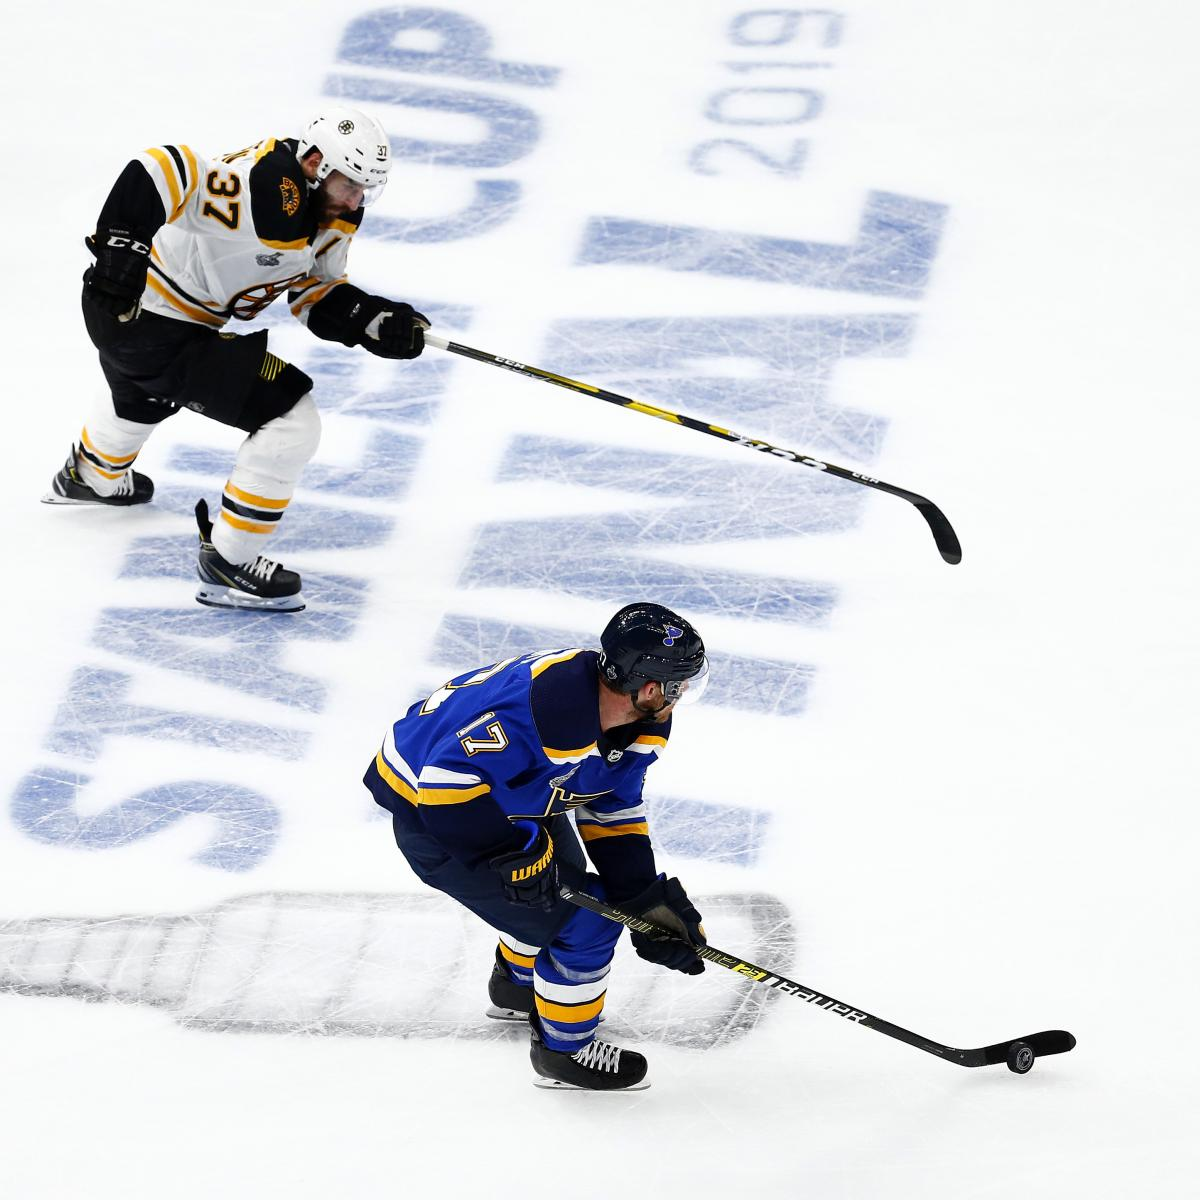 Stanley Cup Game 7, Warriors Must Win, Women's World Cup